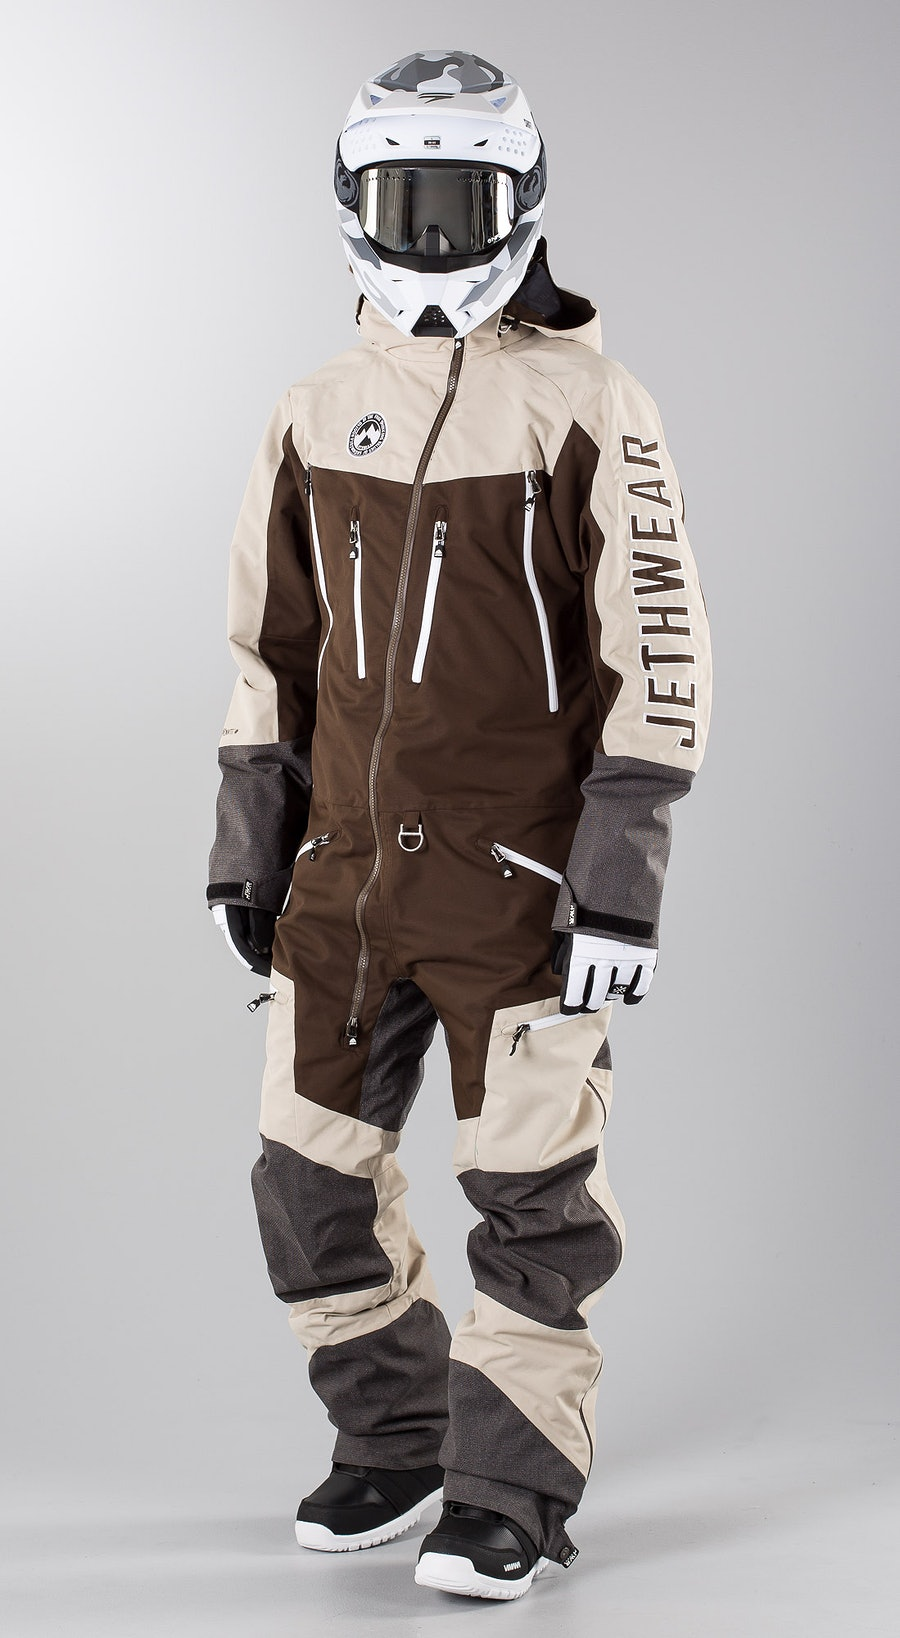 Jethwear Freedom Suit  Java Snowmobile clothing Multi